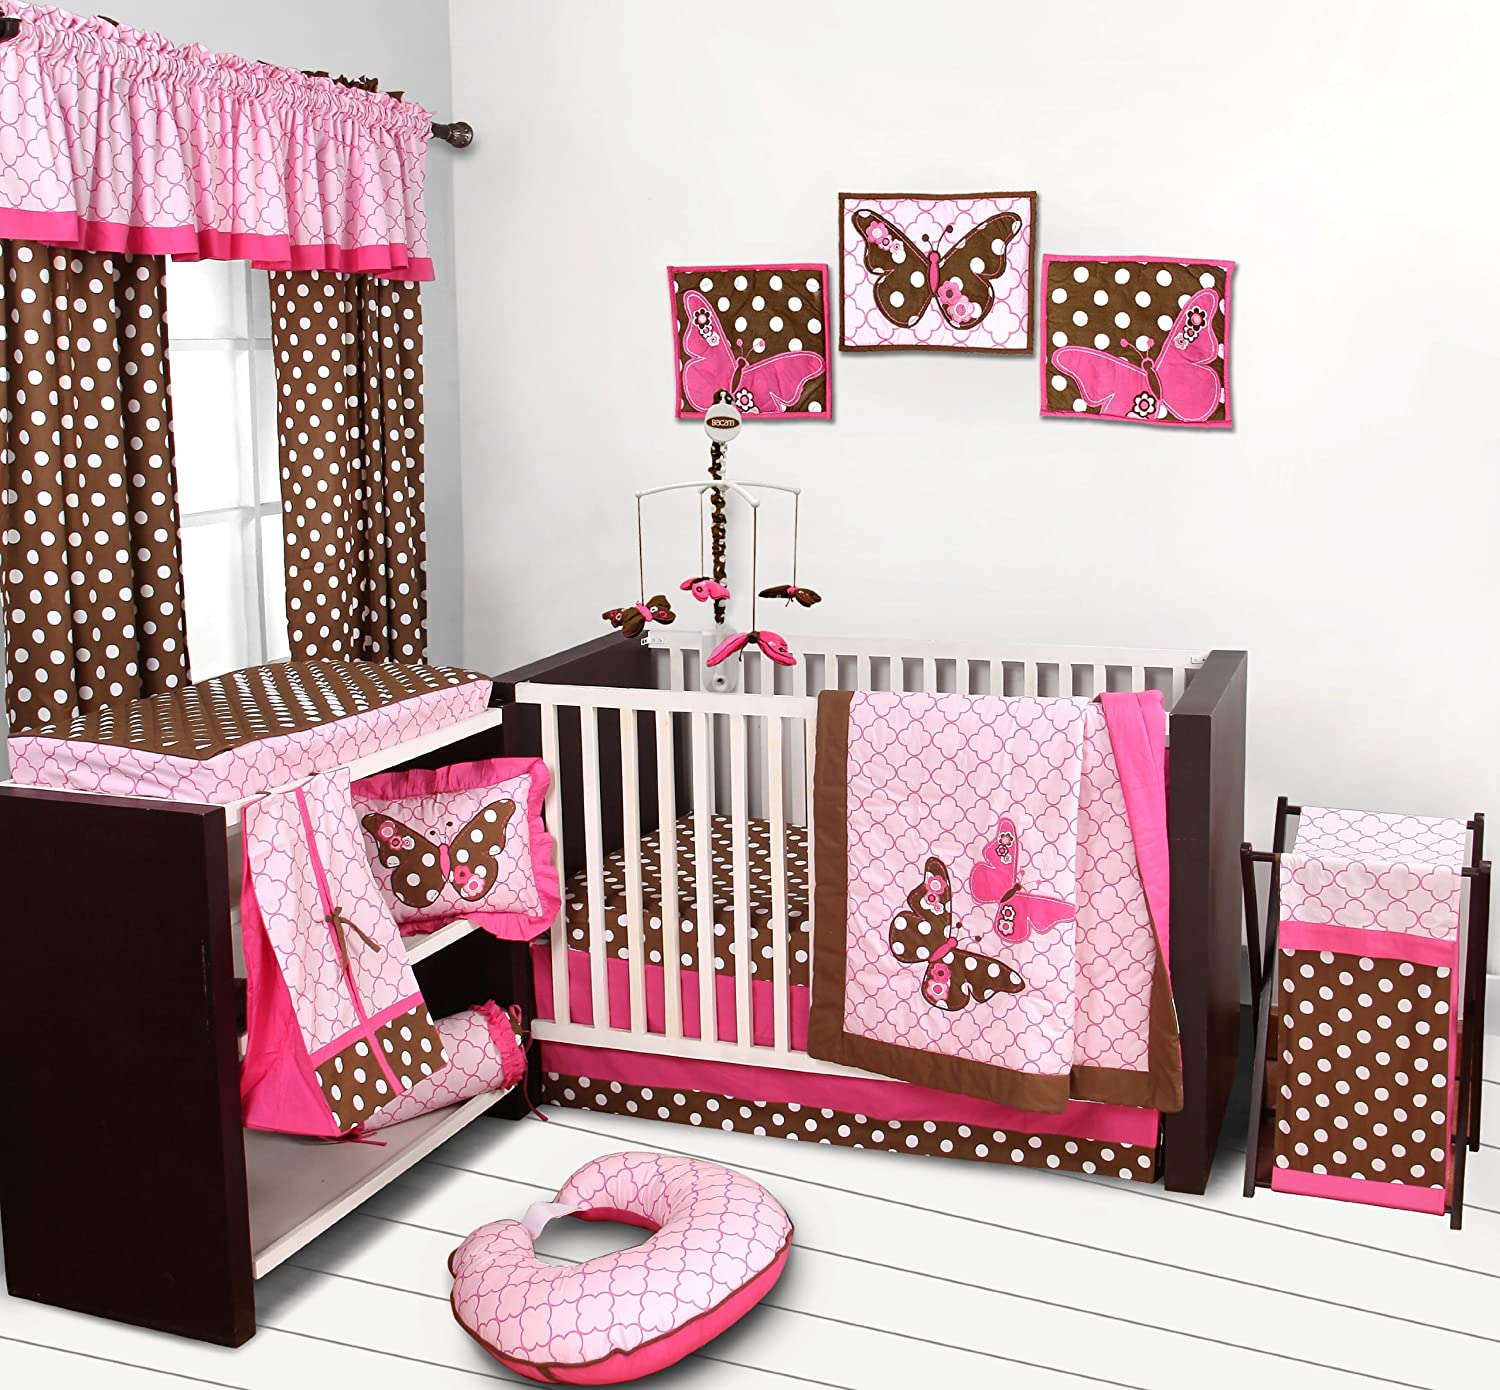 Bacati Butterflies Pink/Chocolate 10 Pc Girls Crib Set with 2 Crib Sheets (Bumper pad not Included)